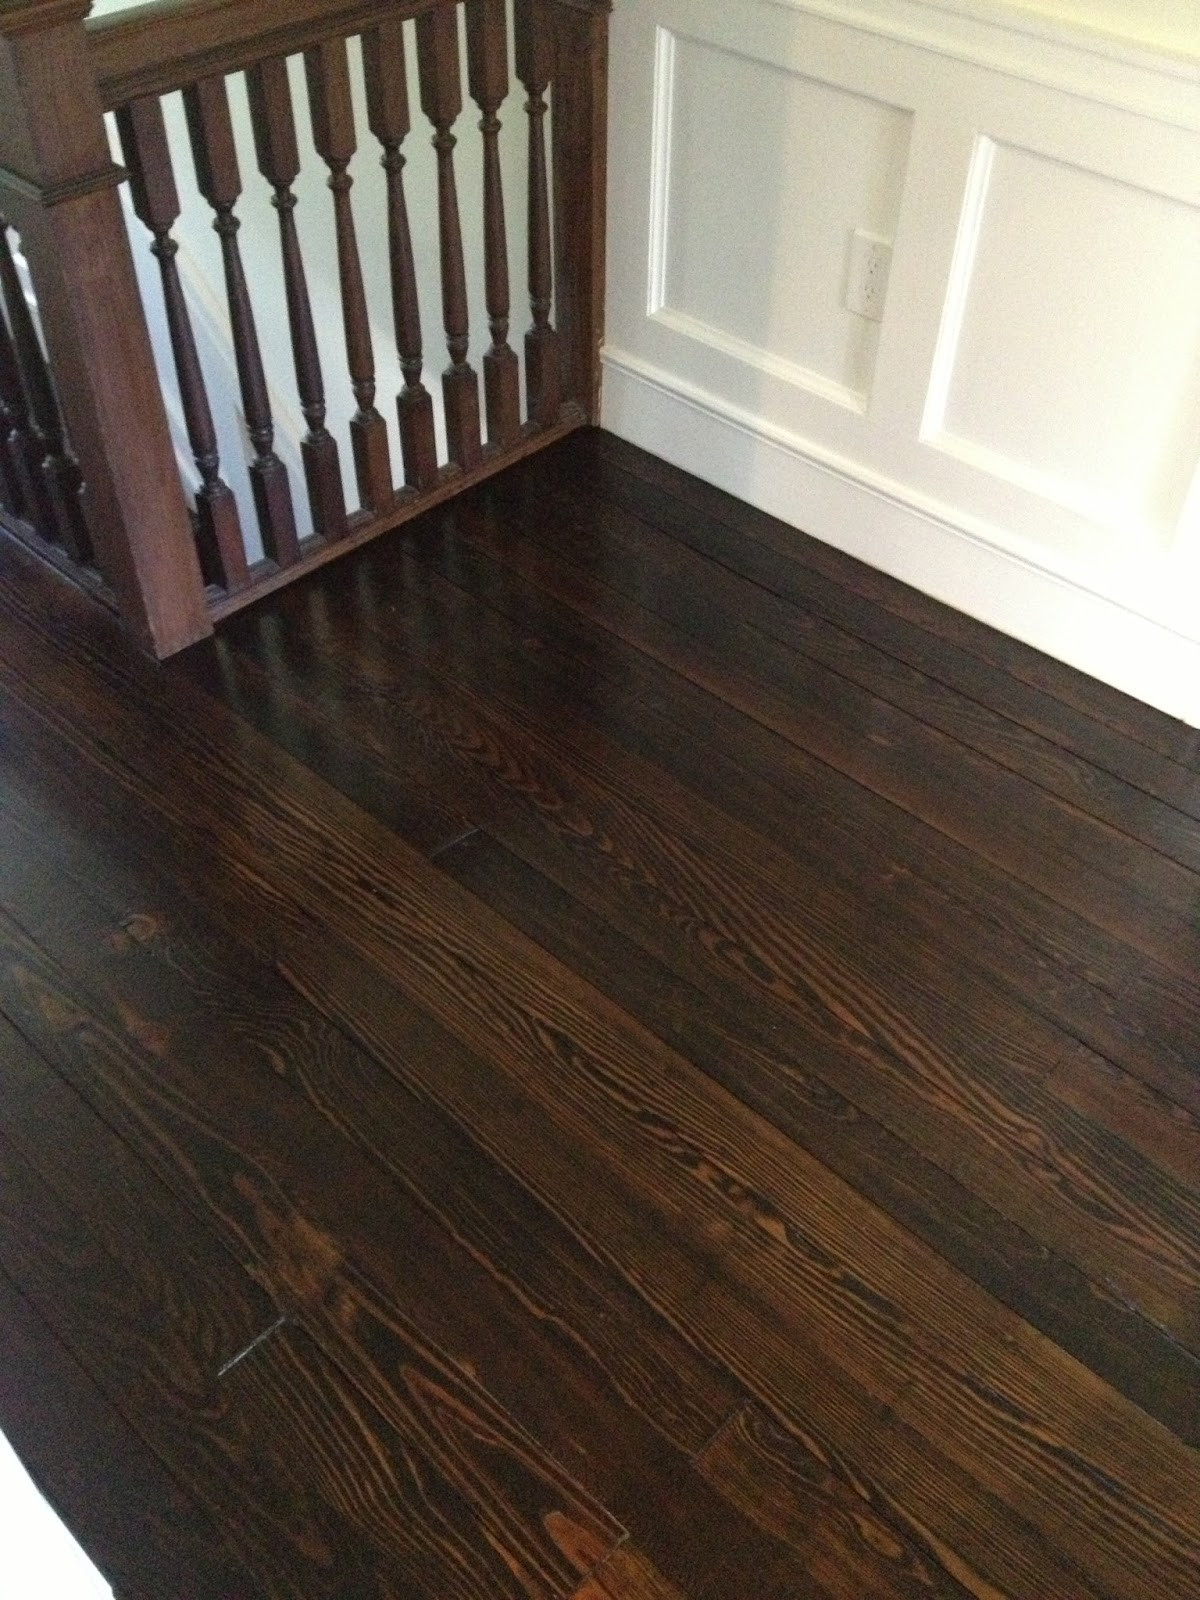 Hardwood Floor Refinishing Nashville Of Wood Floor Jacobean Wood Floor Stain Regarding Images Of Jacobean Wood Floor Stain